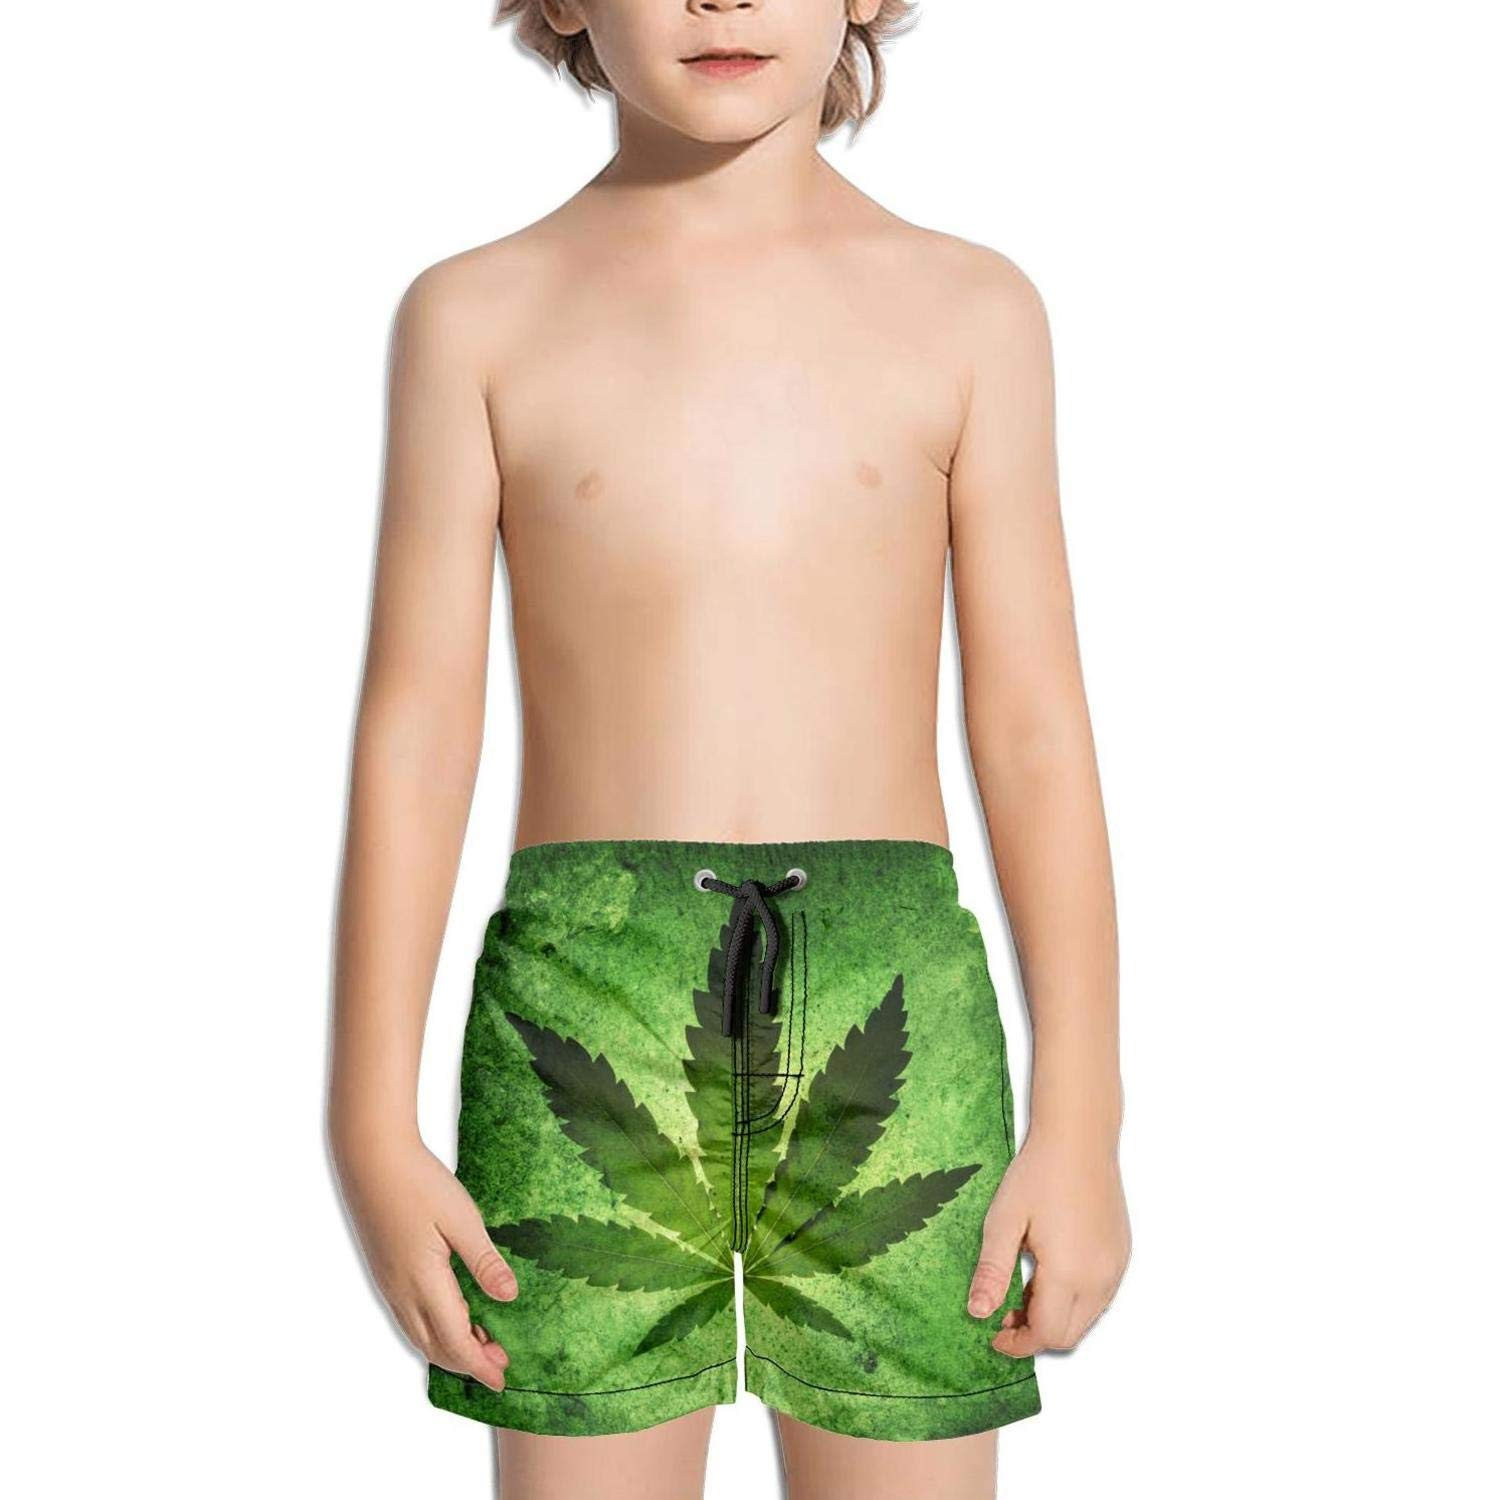 JIONONDS 420 Cannabis Culture Poster Kids Quick Dry Slim Fit Absorbent Swimming Trunks Shorts